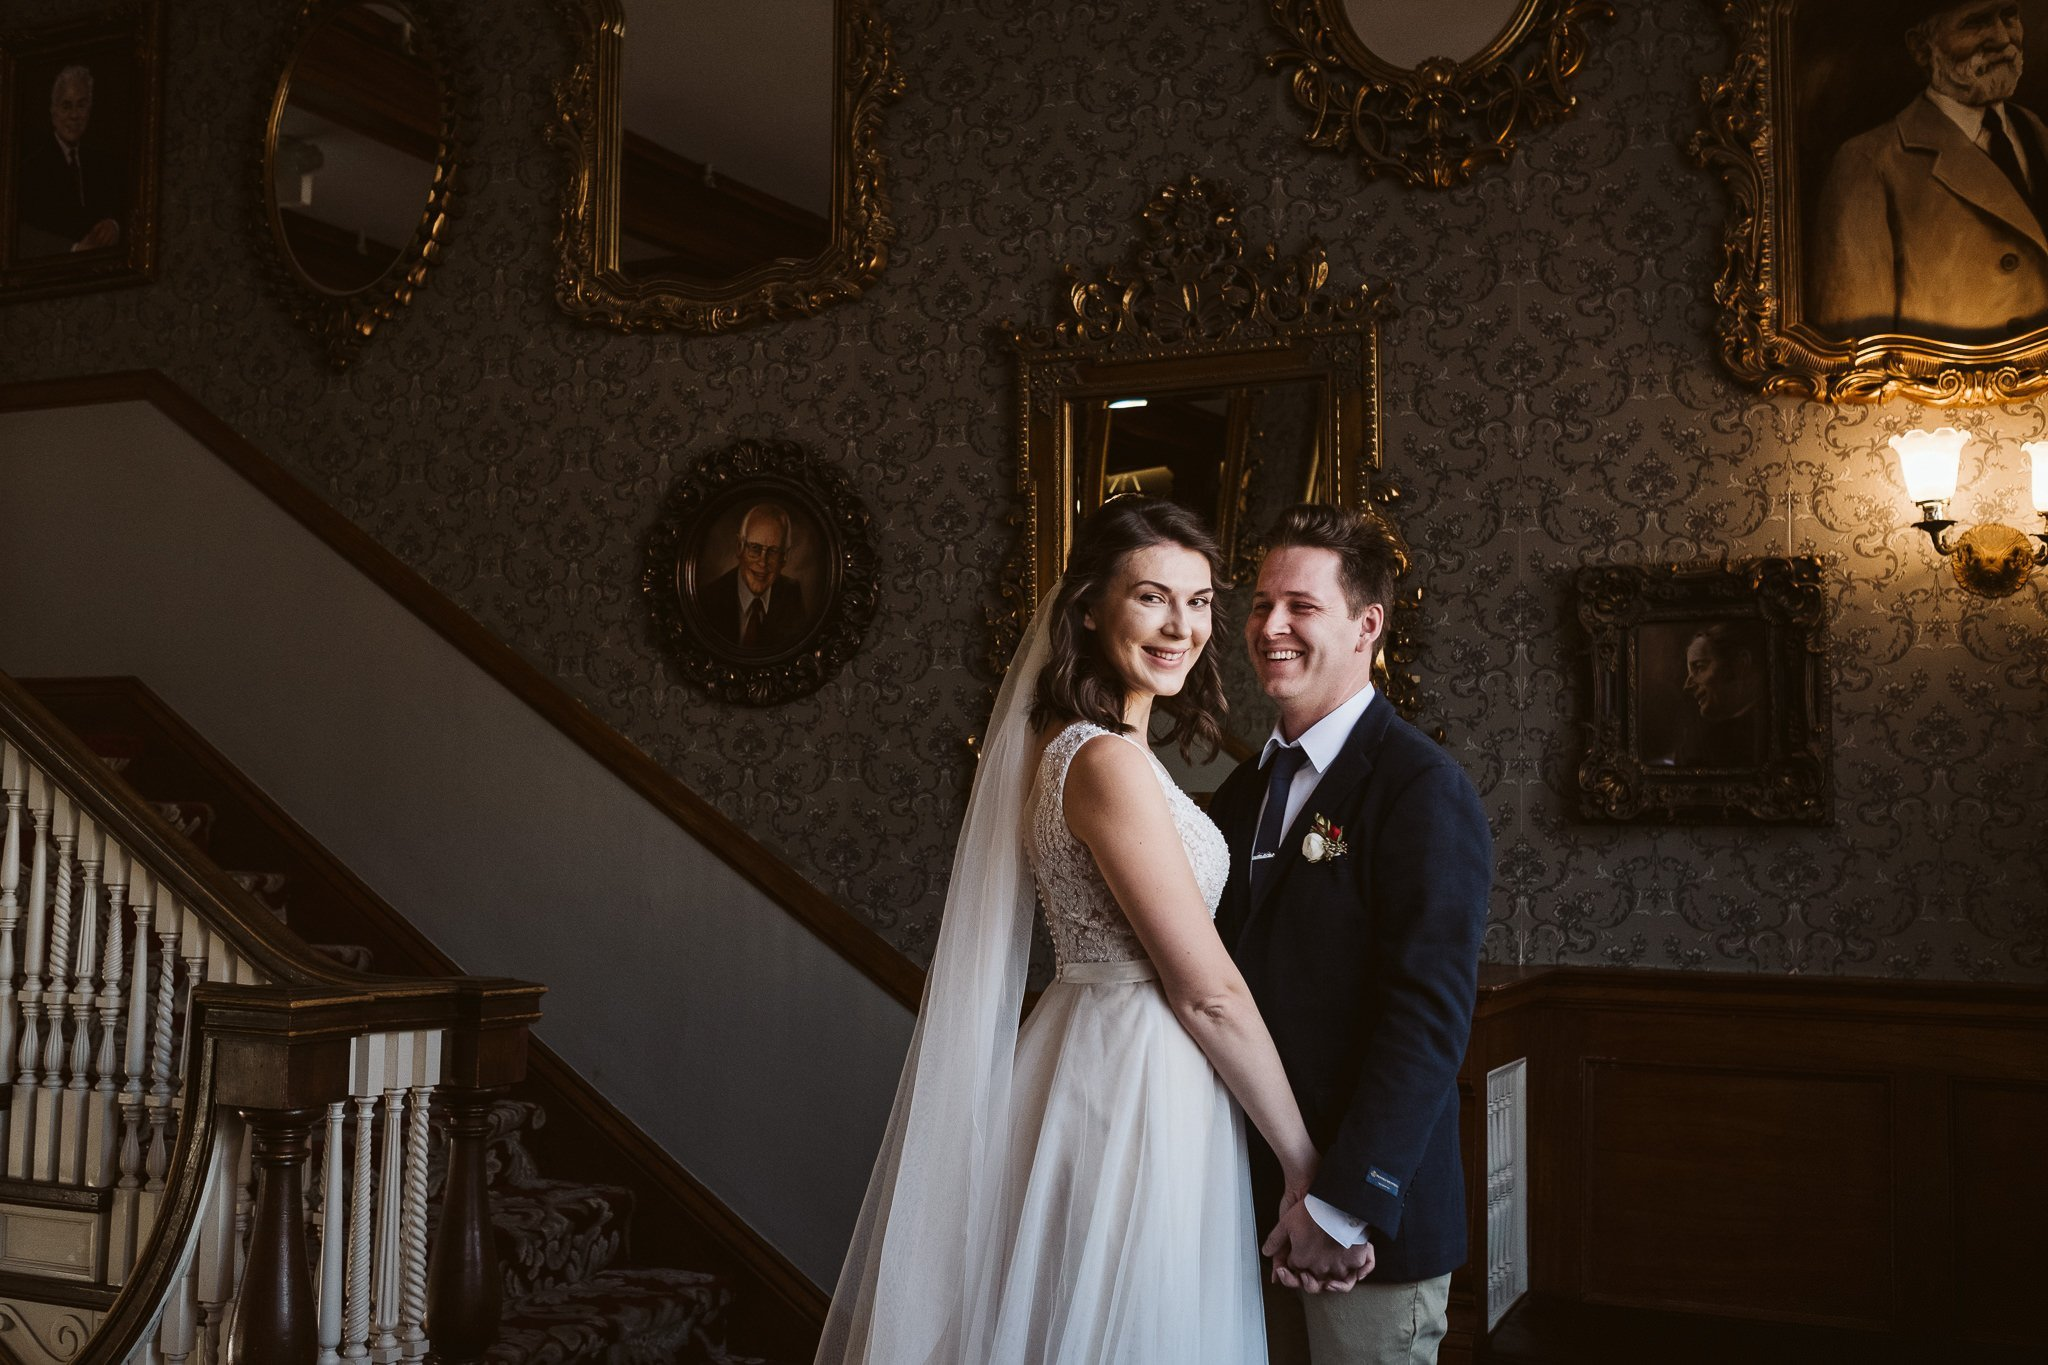 The Stanley Hotel wedding photos in Estes Park.